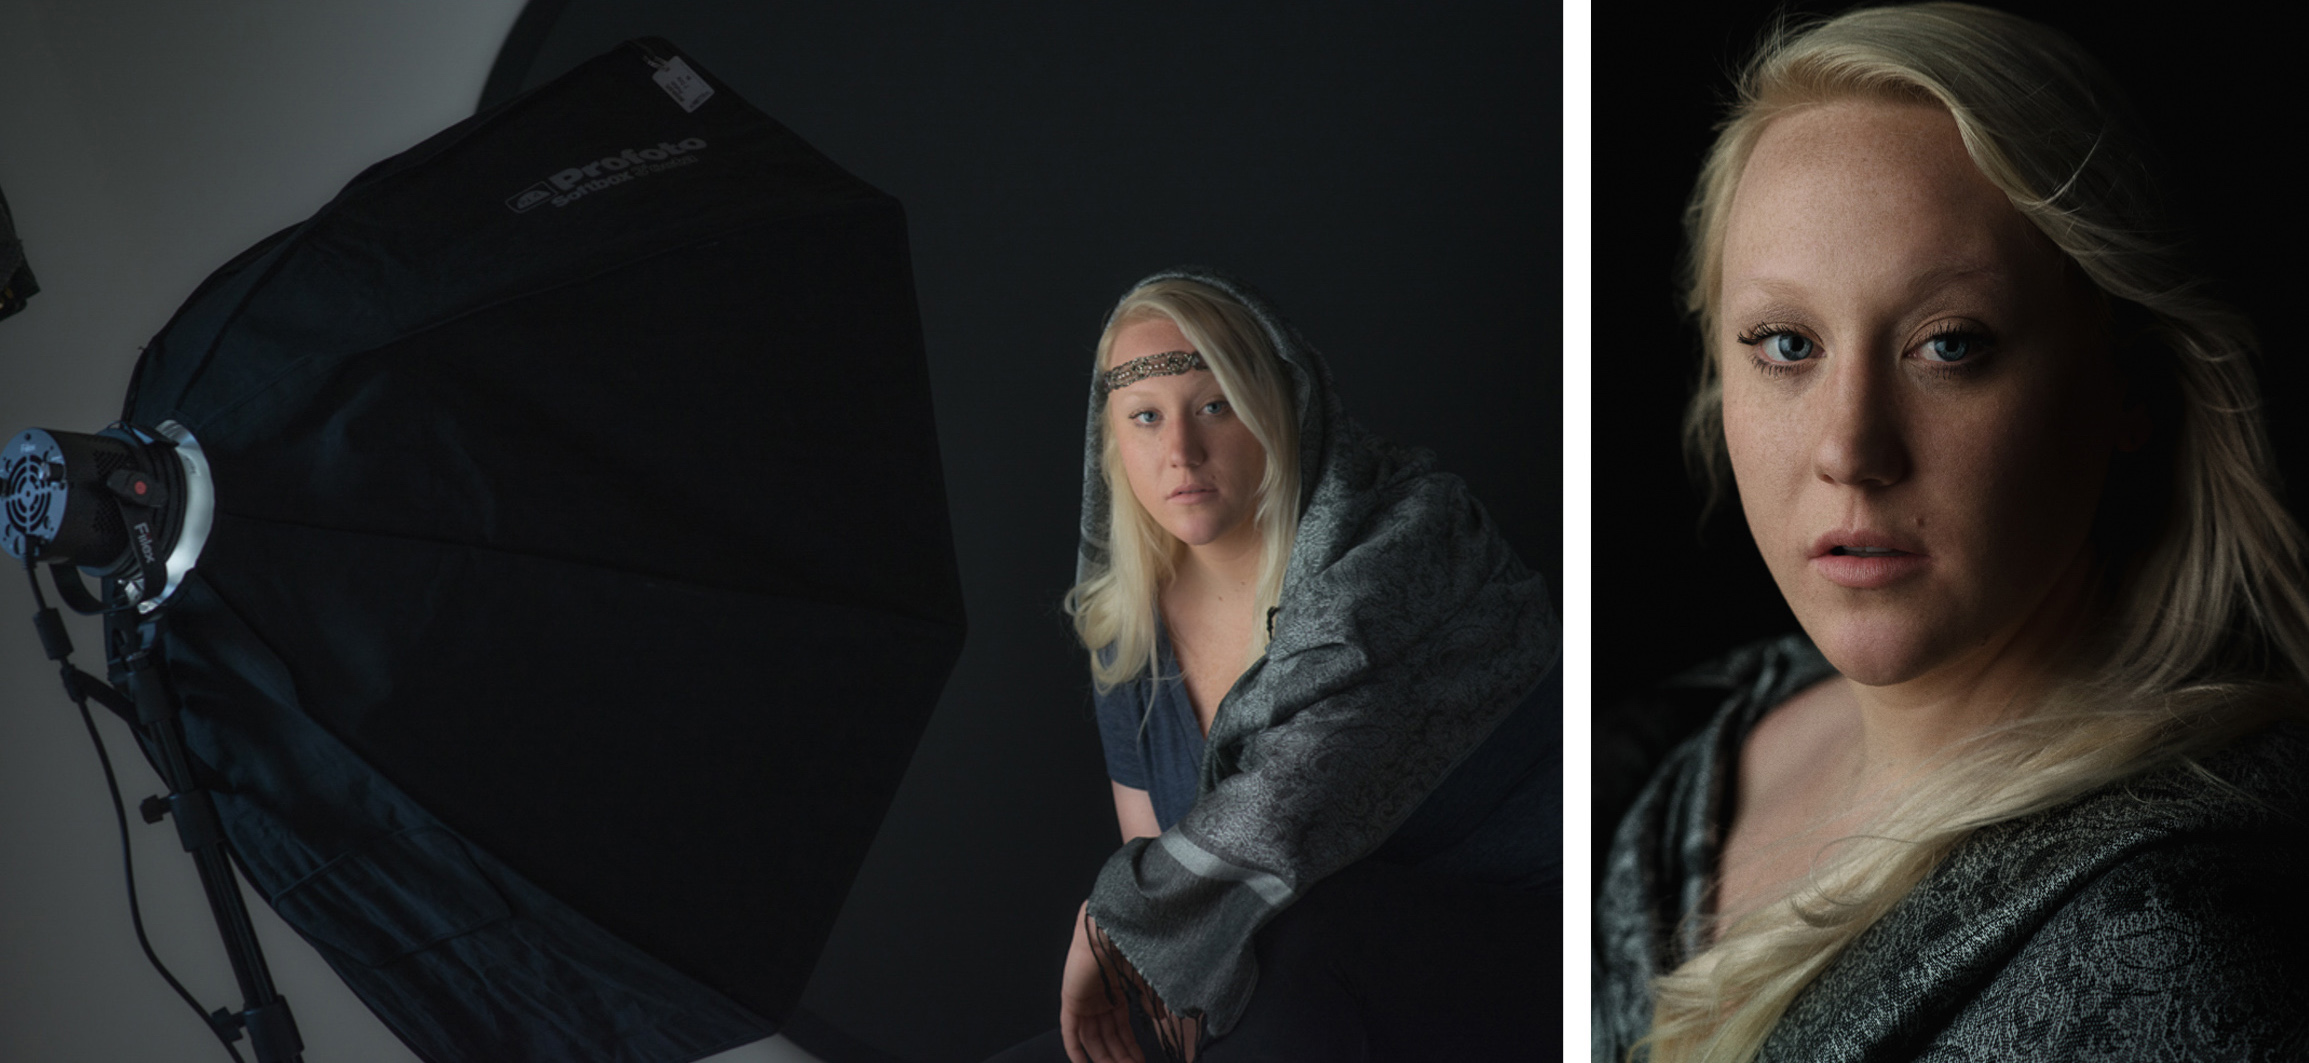 Tutorial: Troubleshooting and Taking Your Chiaroscuro Portraits to the Next Level